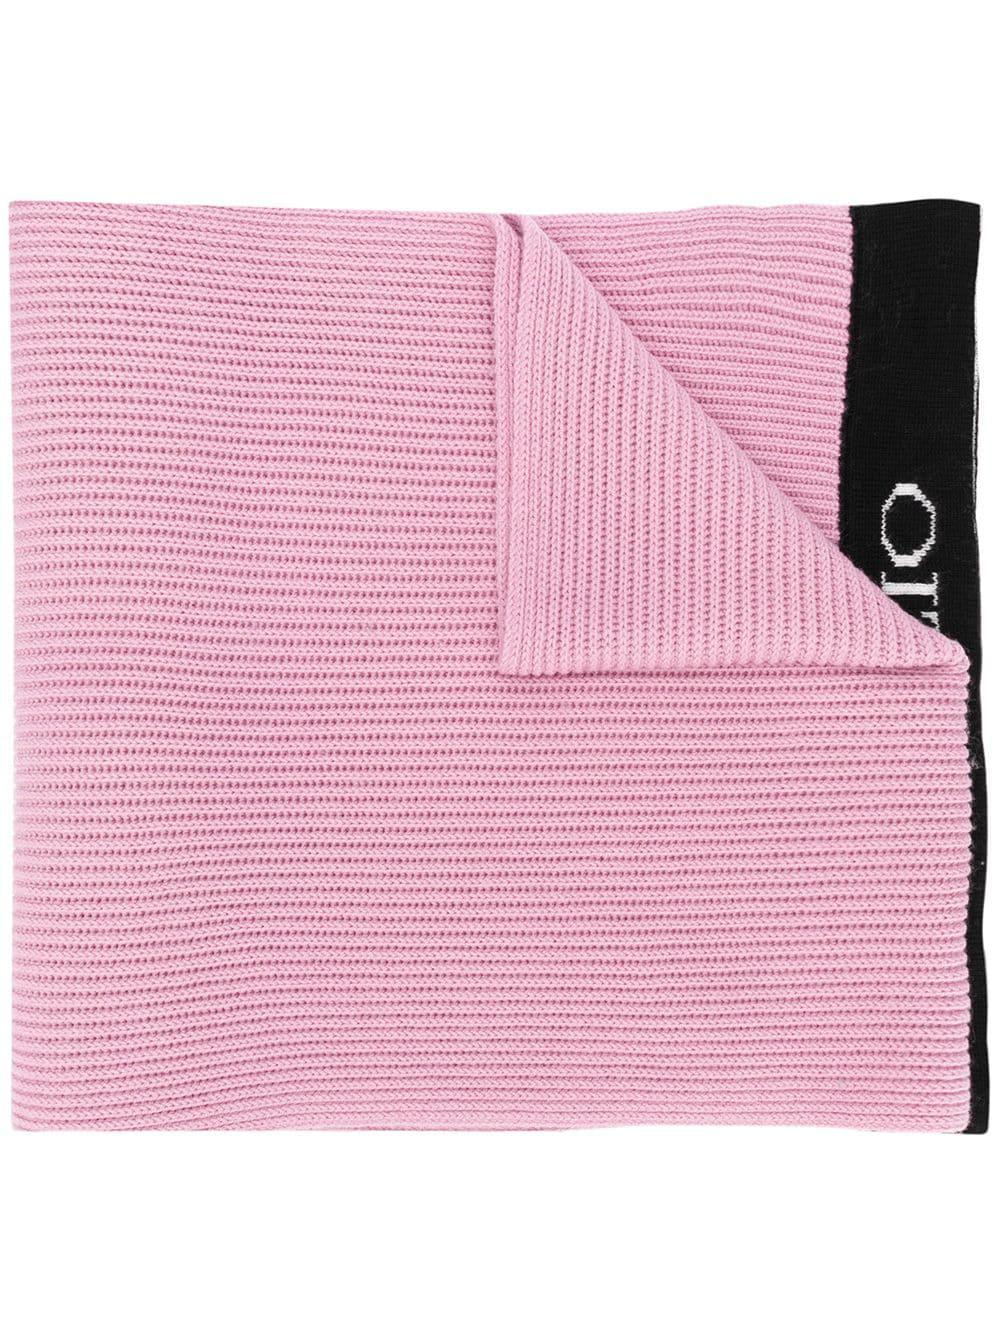 Emilio Pucci Branded Classic Scarf - Pink